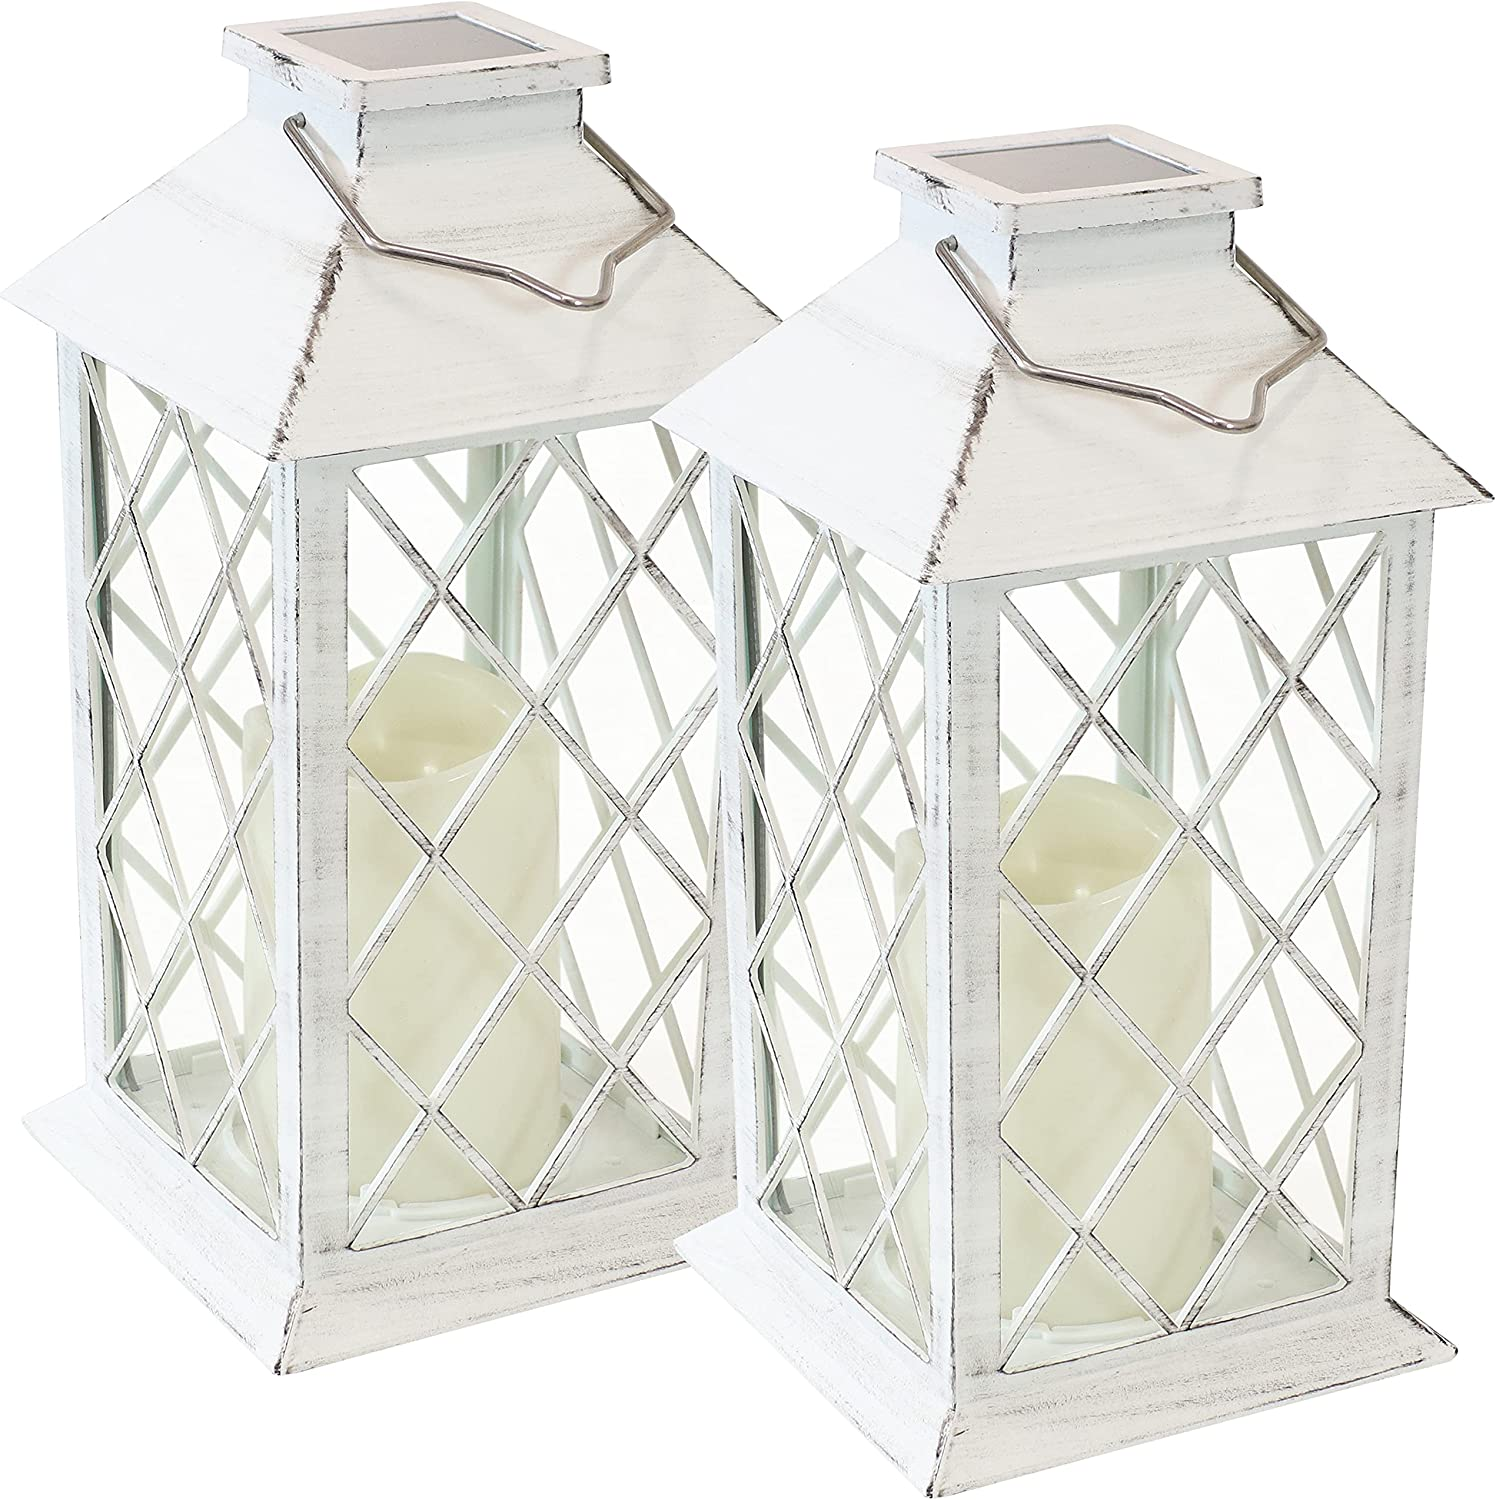 Sunnydaze Concord Outdoor Solar LED Decorative Candle Lantern - Rustic Farmhouse Decor for Patio, Porch, Deck and Garden - Tabletop and Hanging Outside Light - Set of 2 - 11-Inch - White